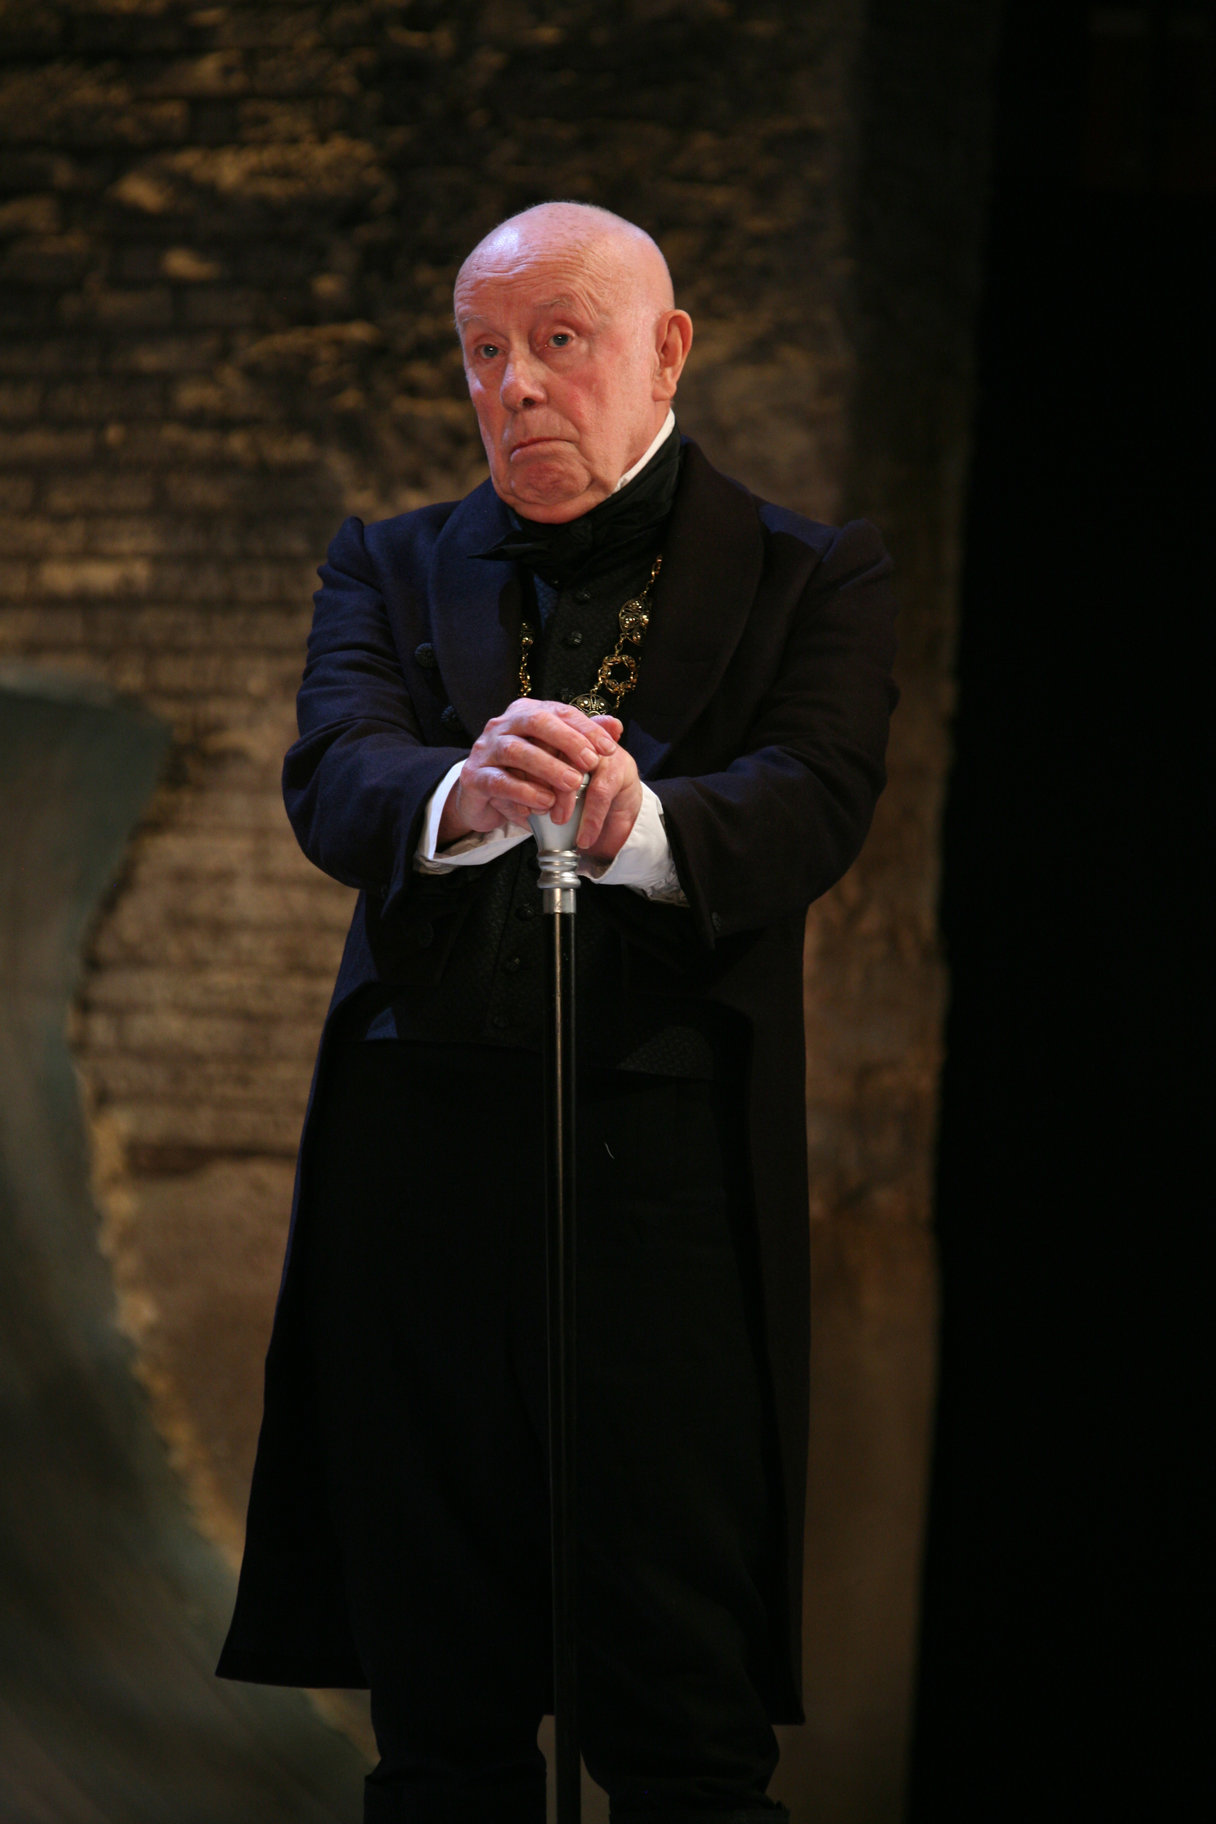 Richard Wilson as Malvolio. He is standing looking ahead, with his hands resting on the top of a cane.